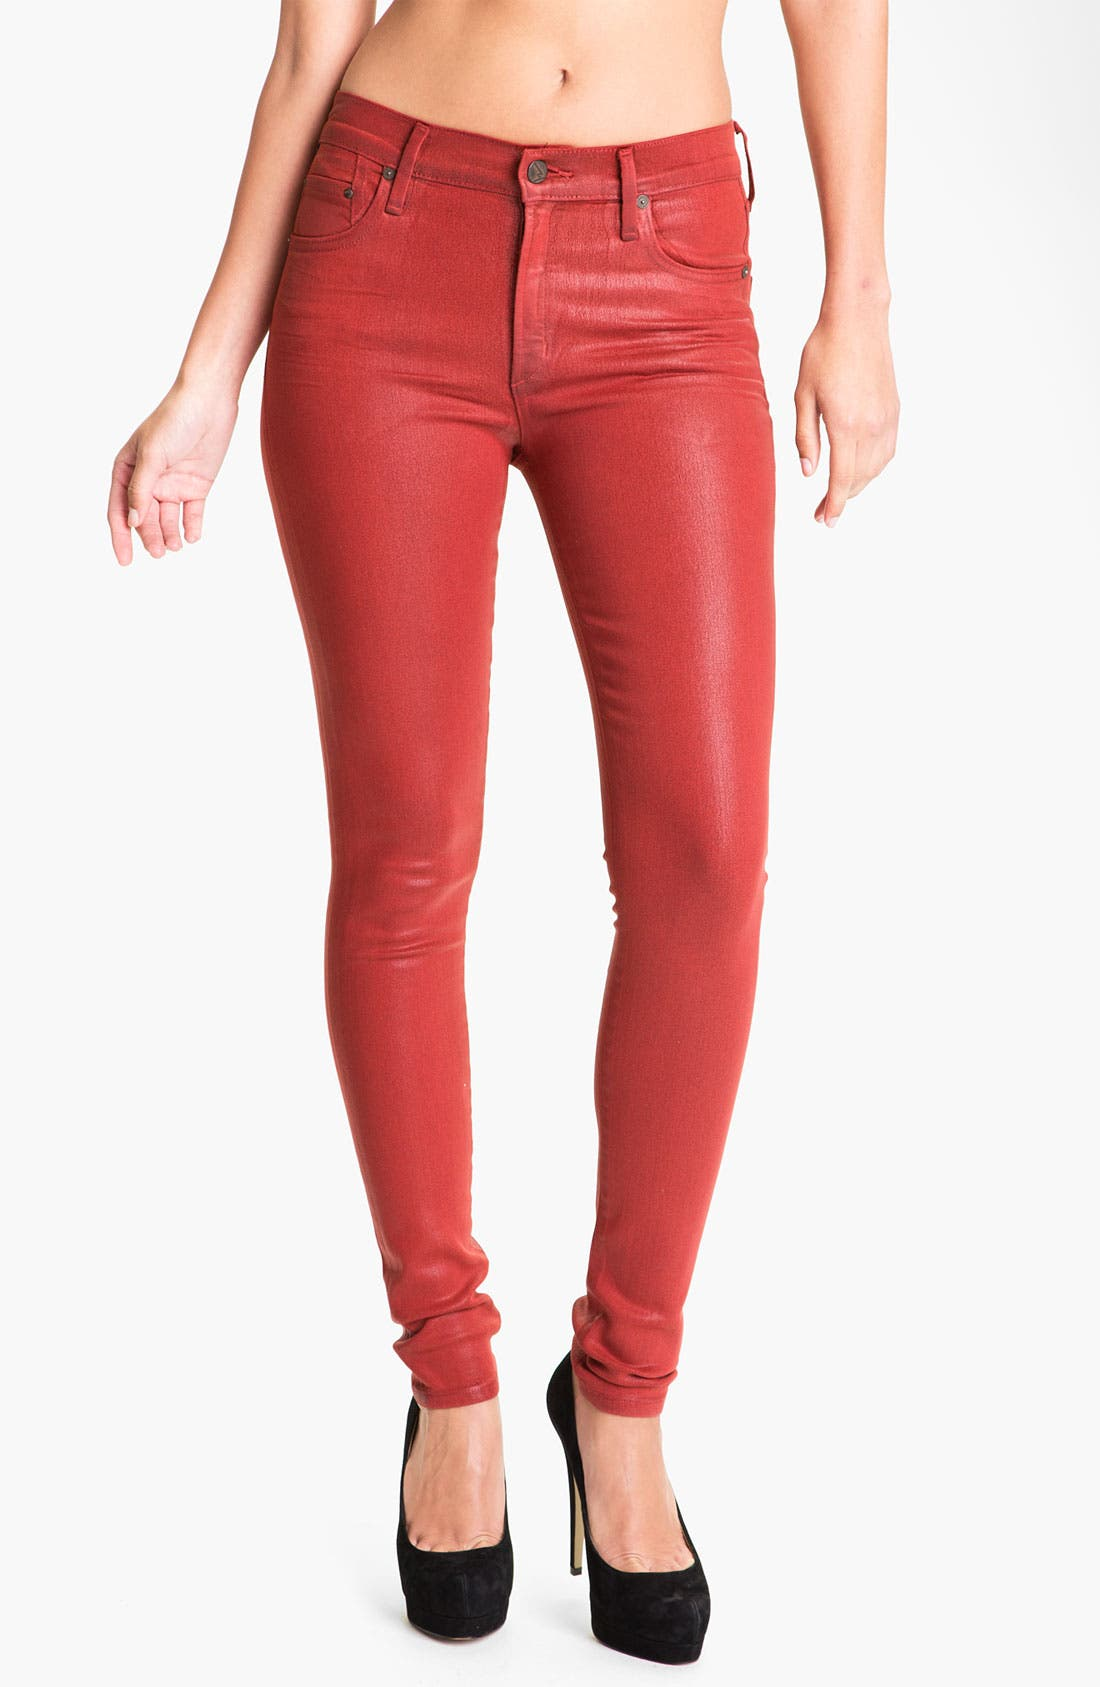 Main Image - Citizens of Humanity 'Rocket' Skinny Leatherette Jeans (Vamp Red)